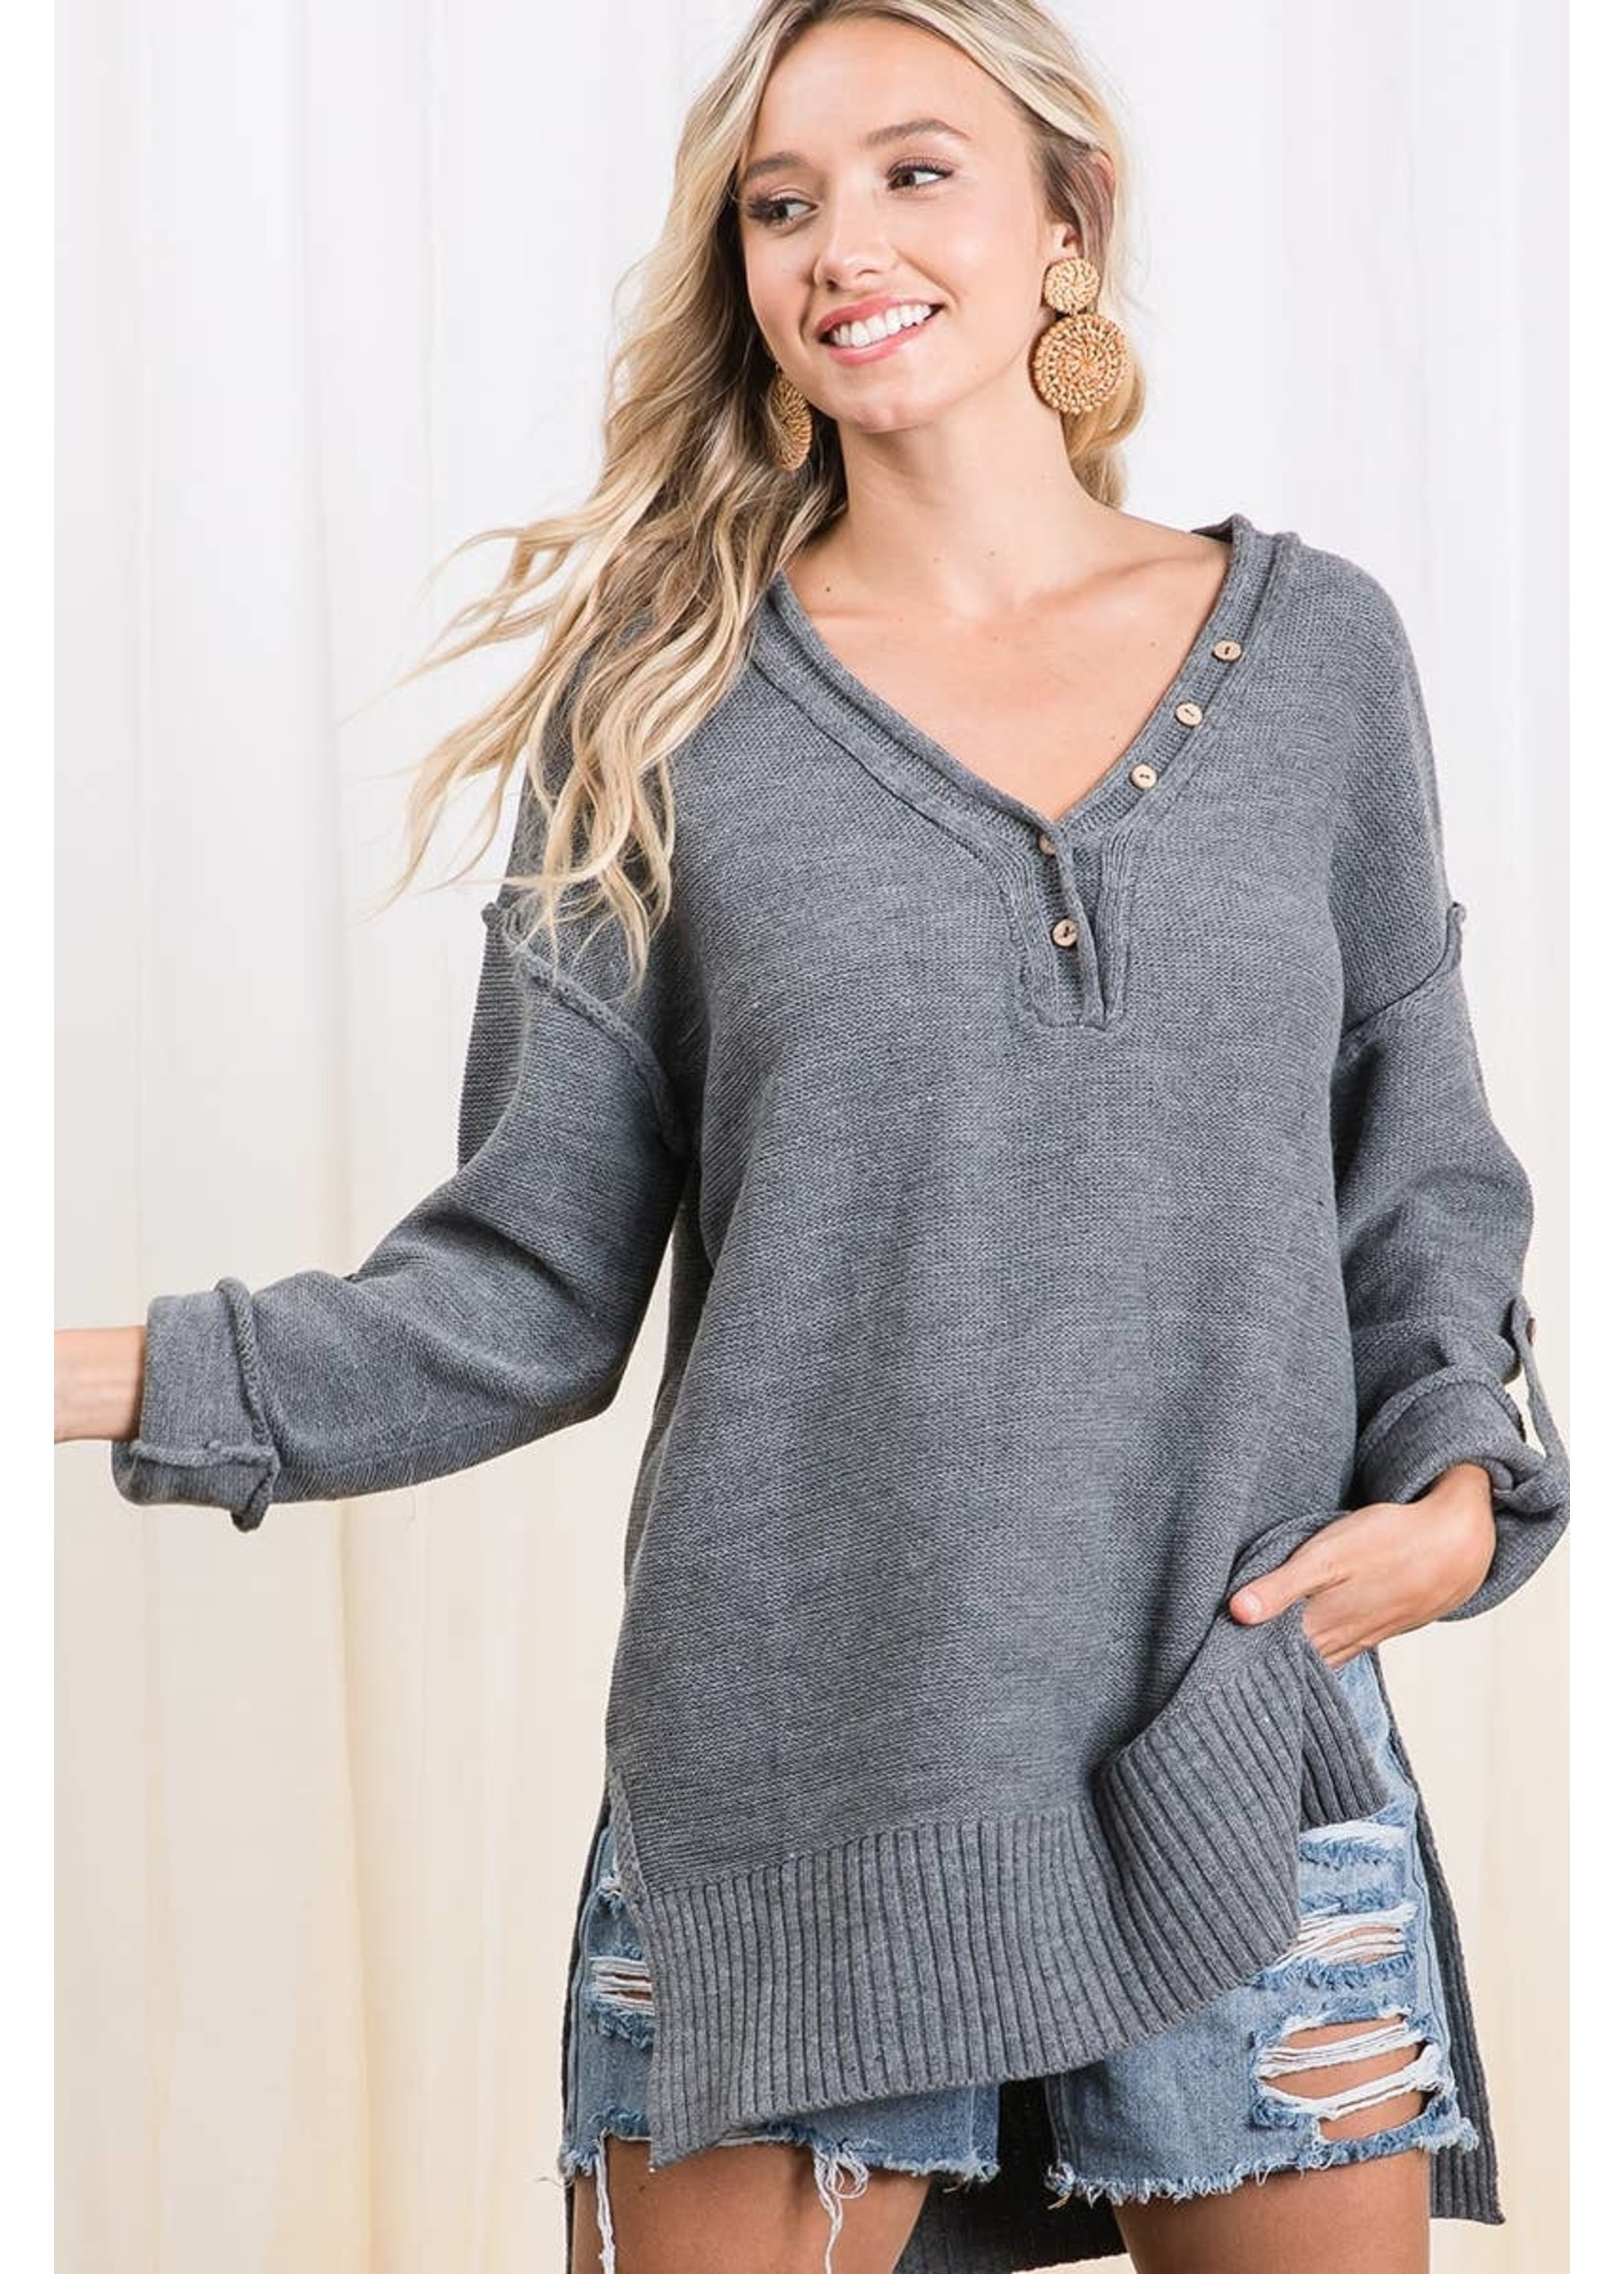 Ces Femme Roll-up Sleeve light weight sweater-charcoal